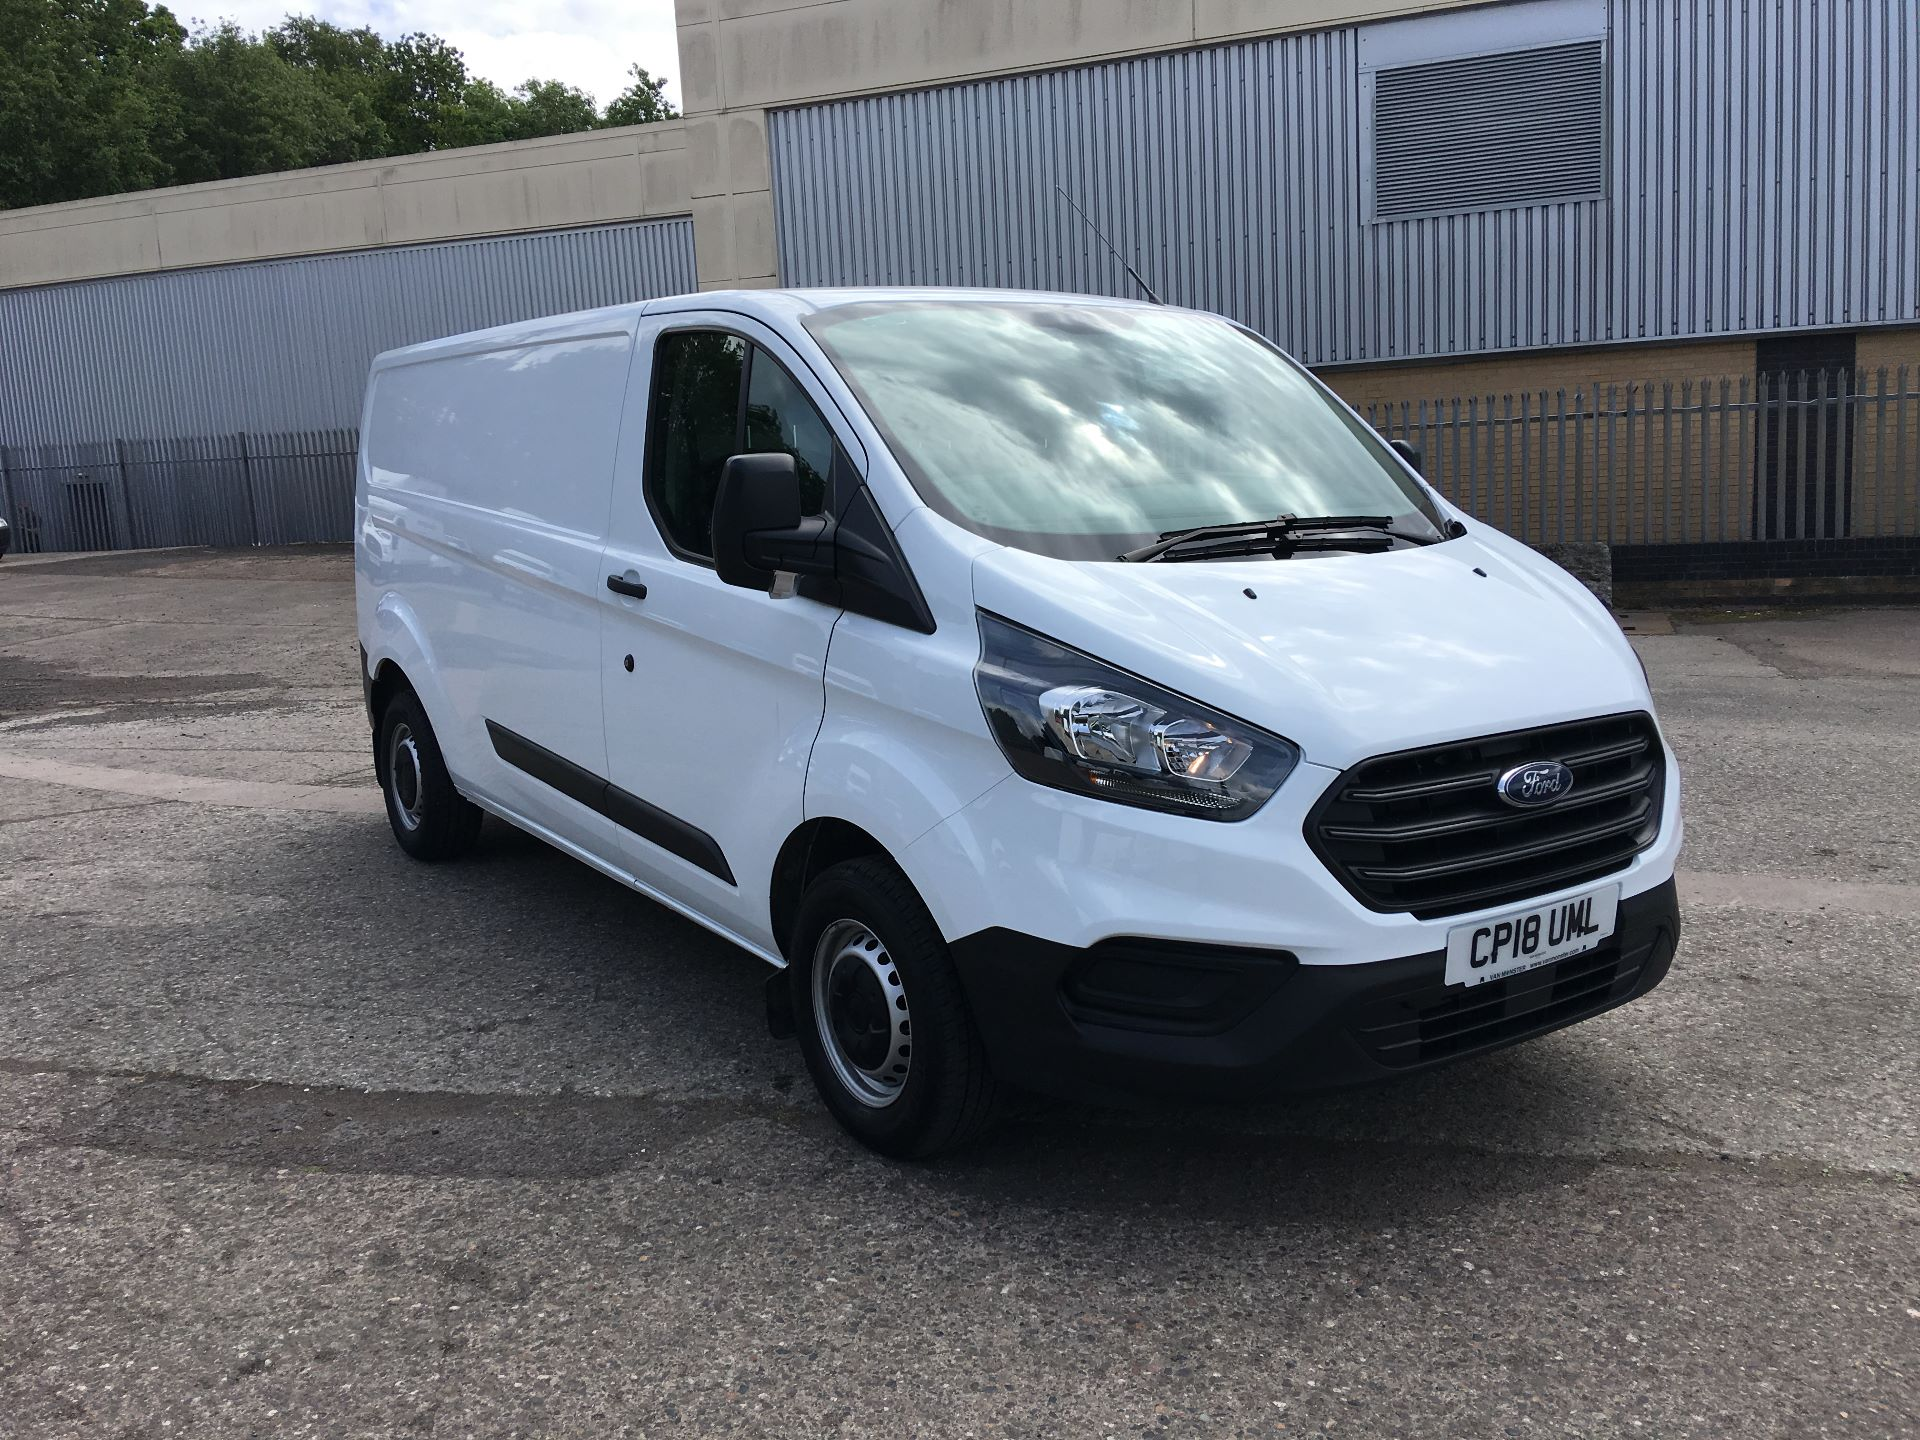 2018 Ford Transit Custom 300 L2 DIESEL FWD 2.0 TDCI 105PS LOW ROOF EURO 6